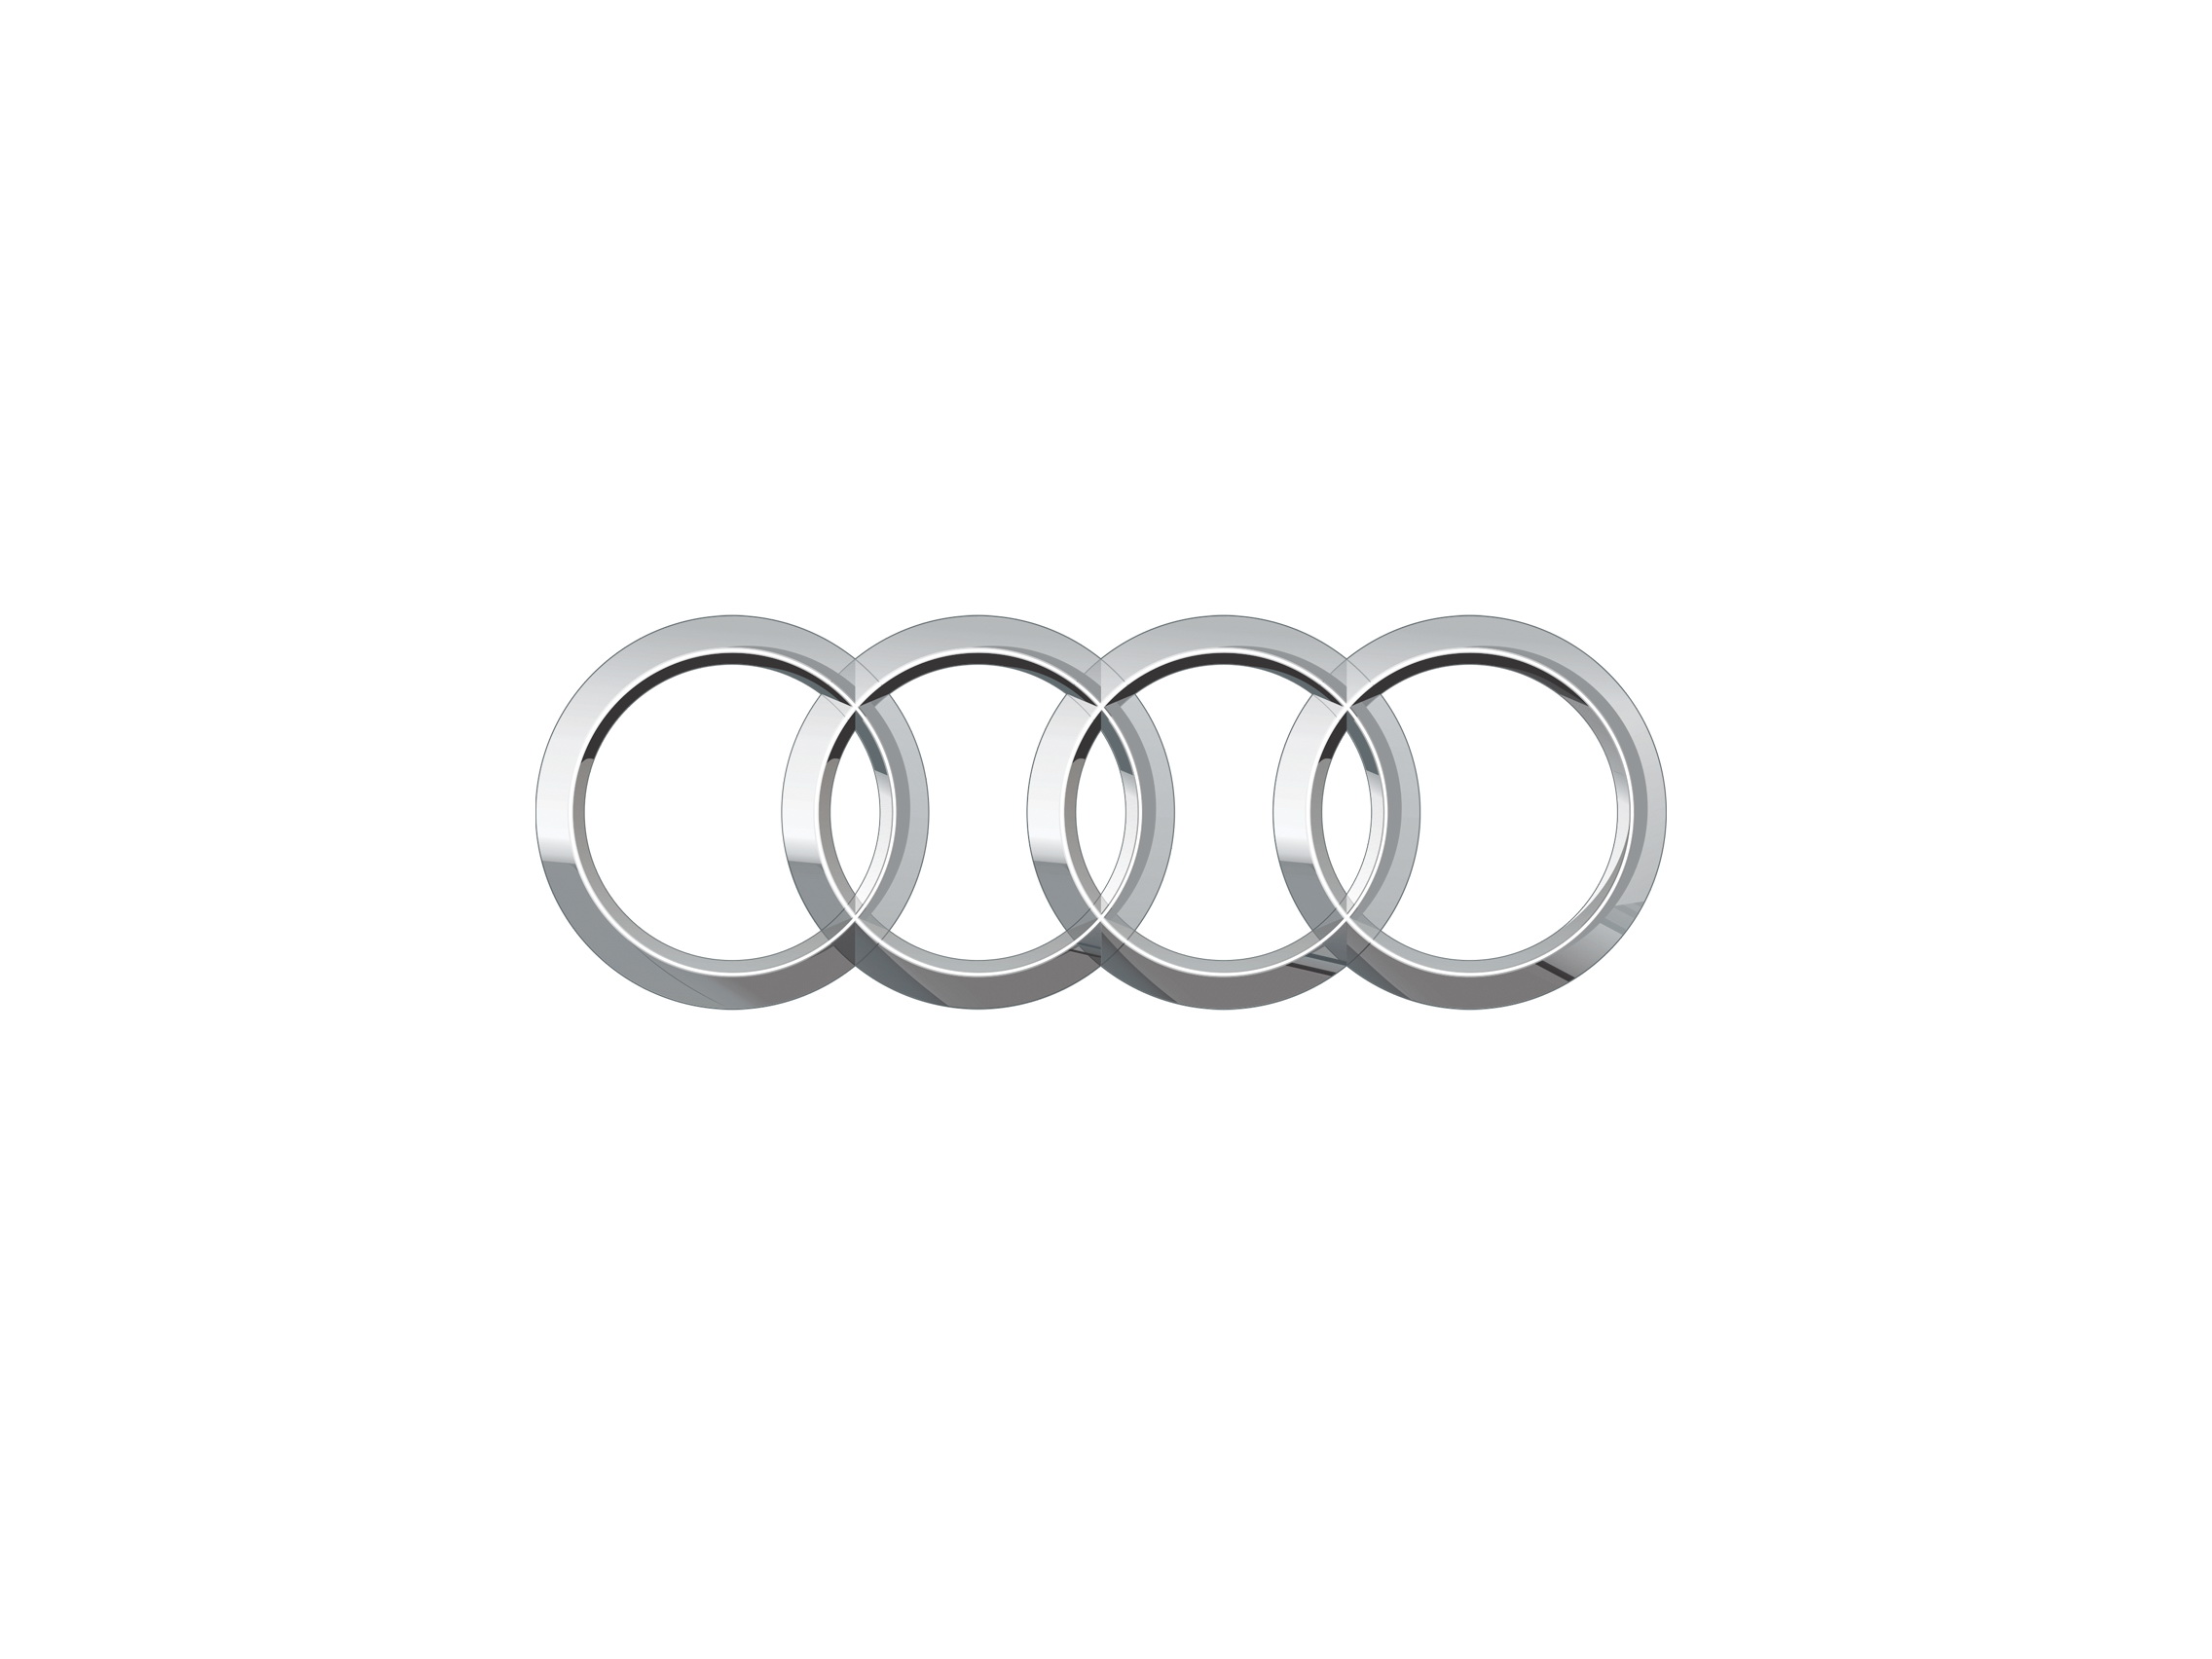 Car Wallpaper Hd Iphone 4 Audi Logo Wallpapers Pictures Images